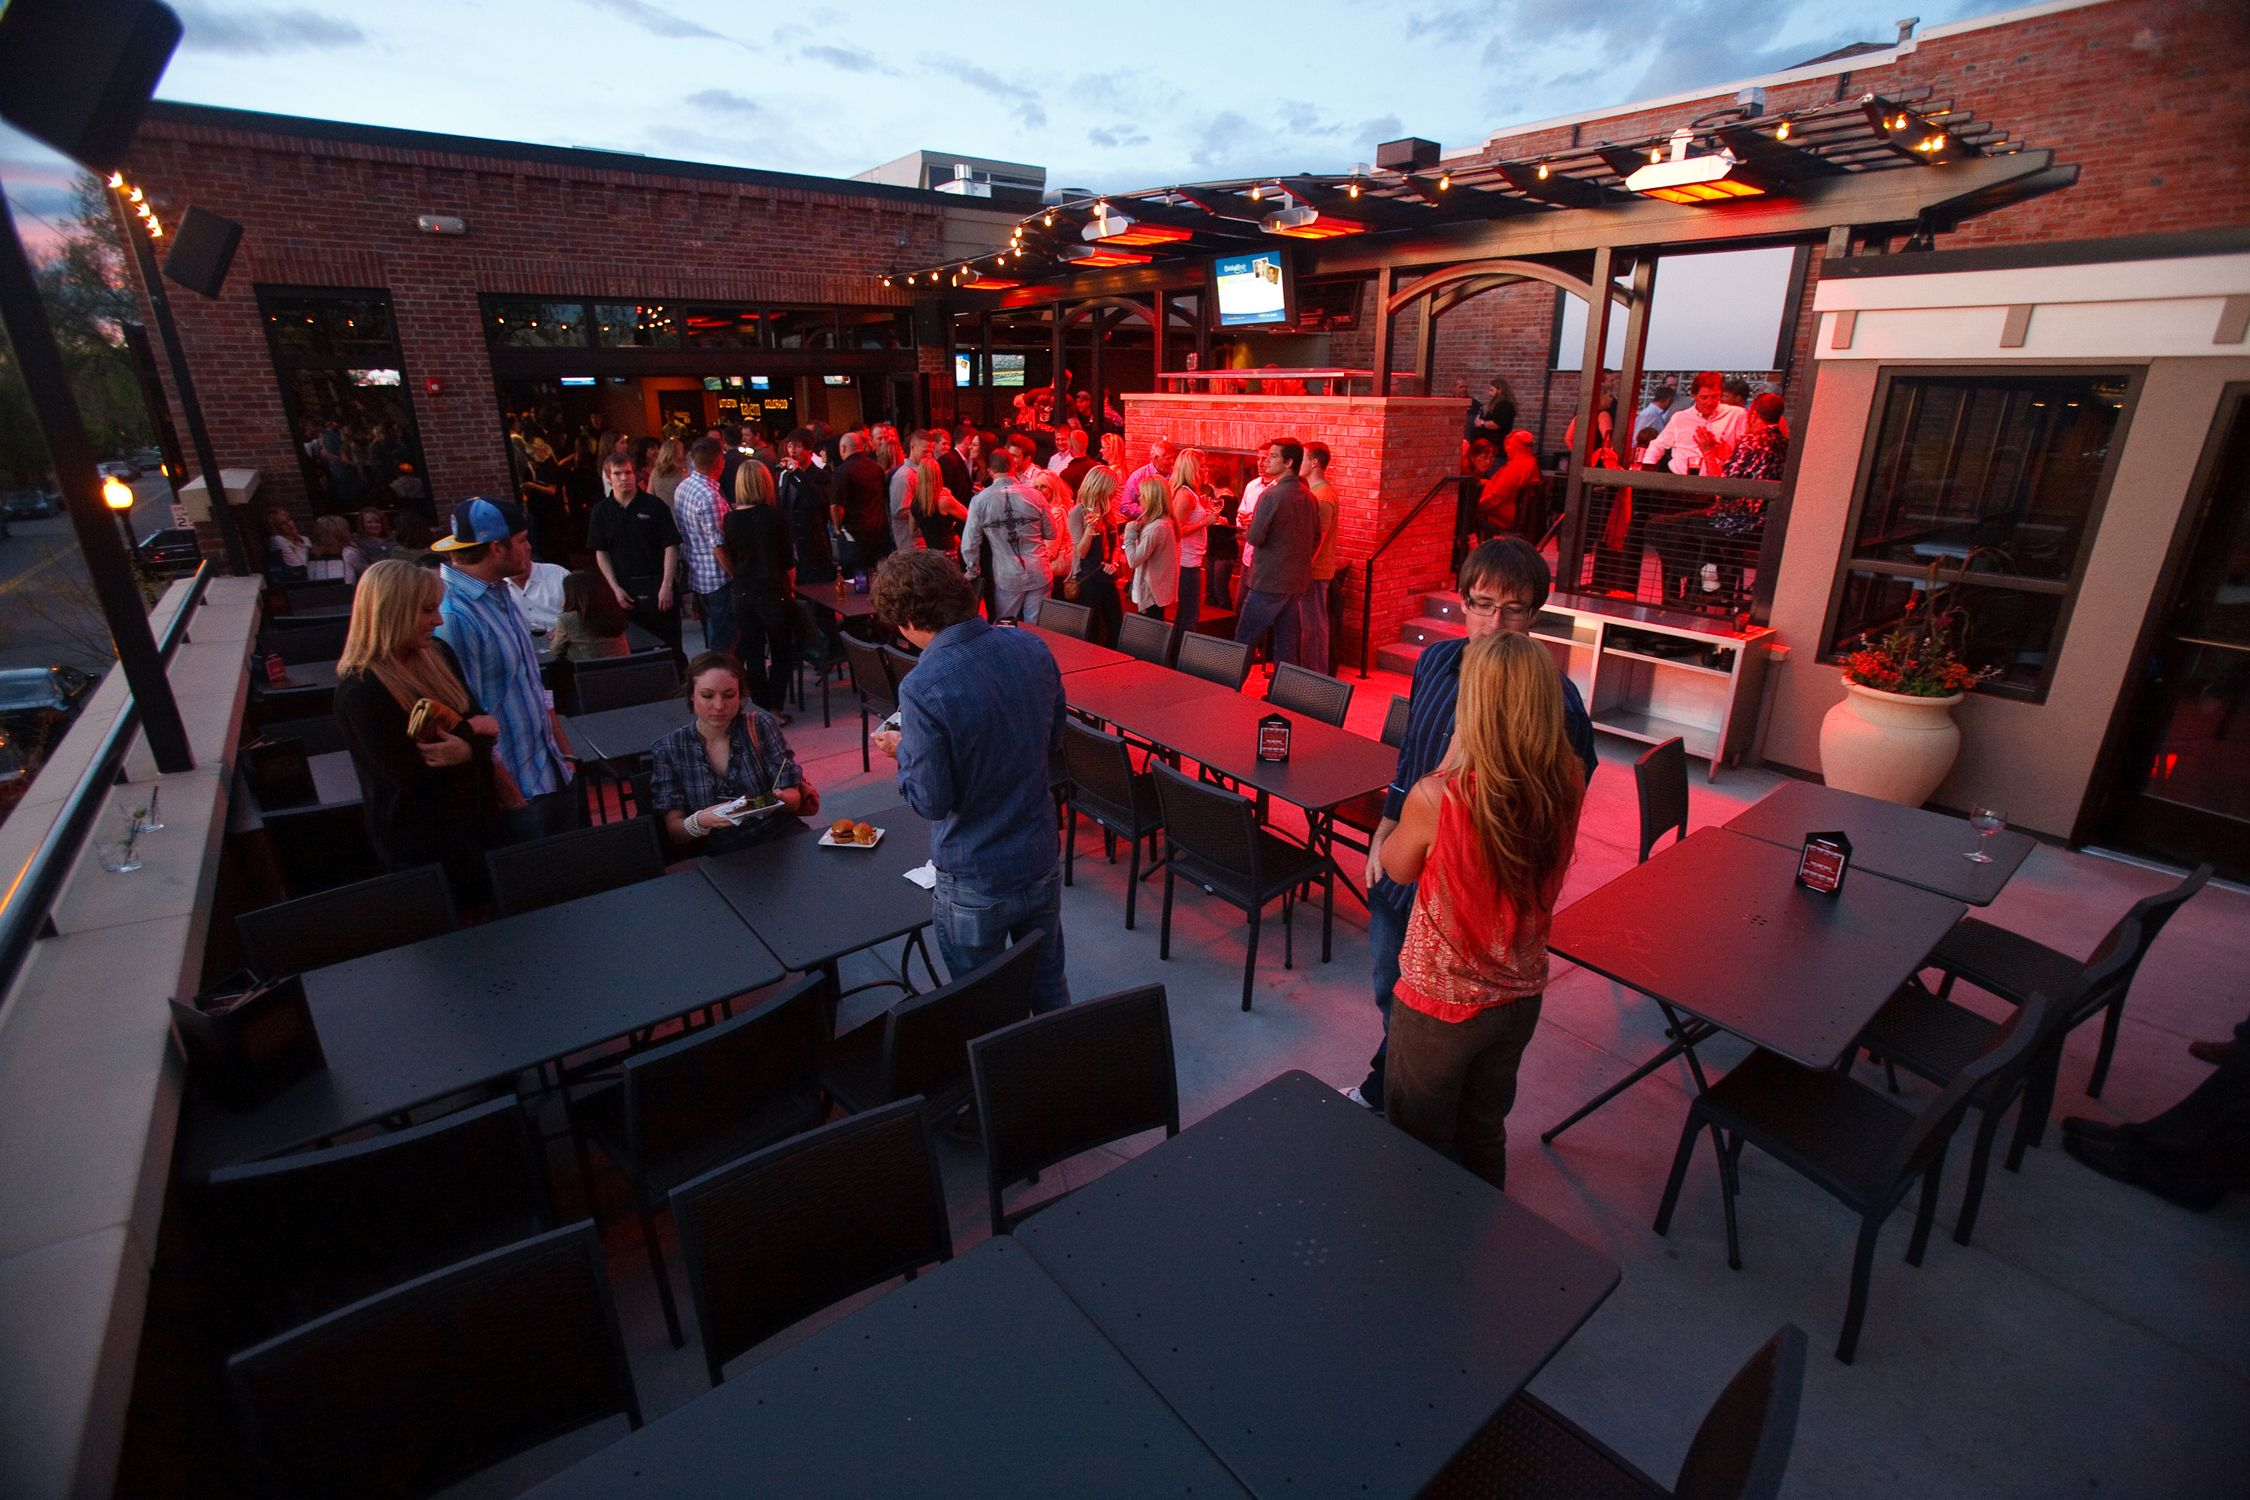 Tavern Littleton Littletonrooftop Http Www Tavernhg Com Littleton Private Parties Rooftop Patio Terrace Outdoor Seating